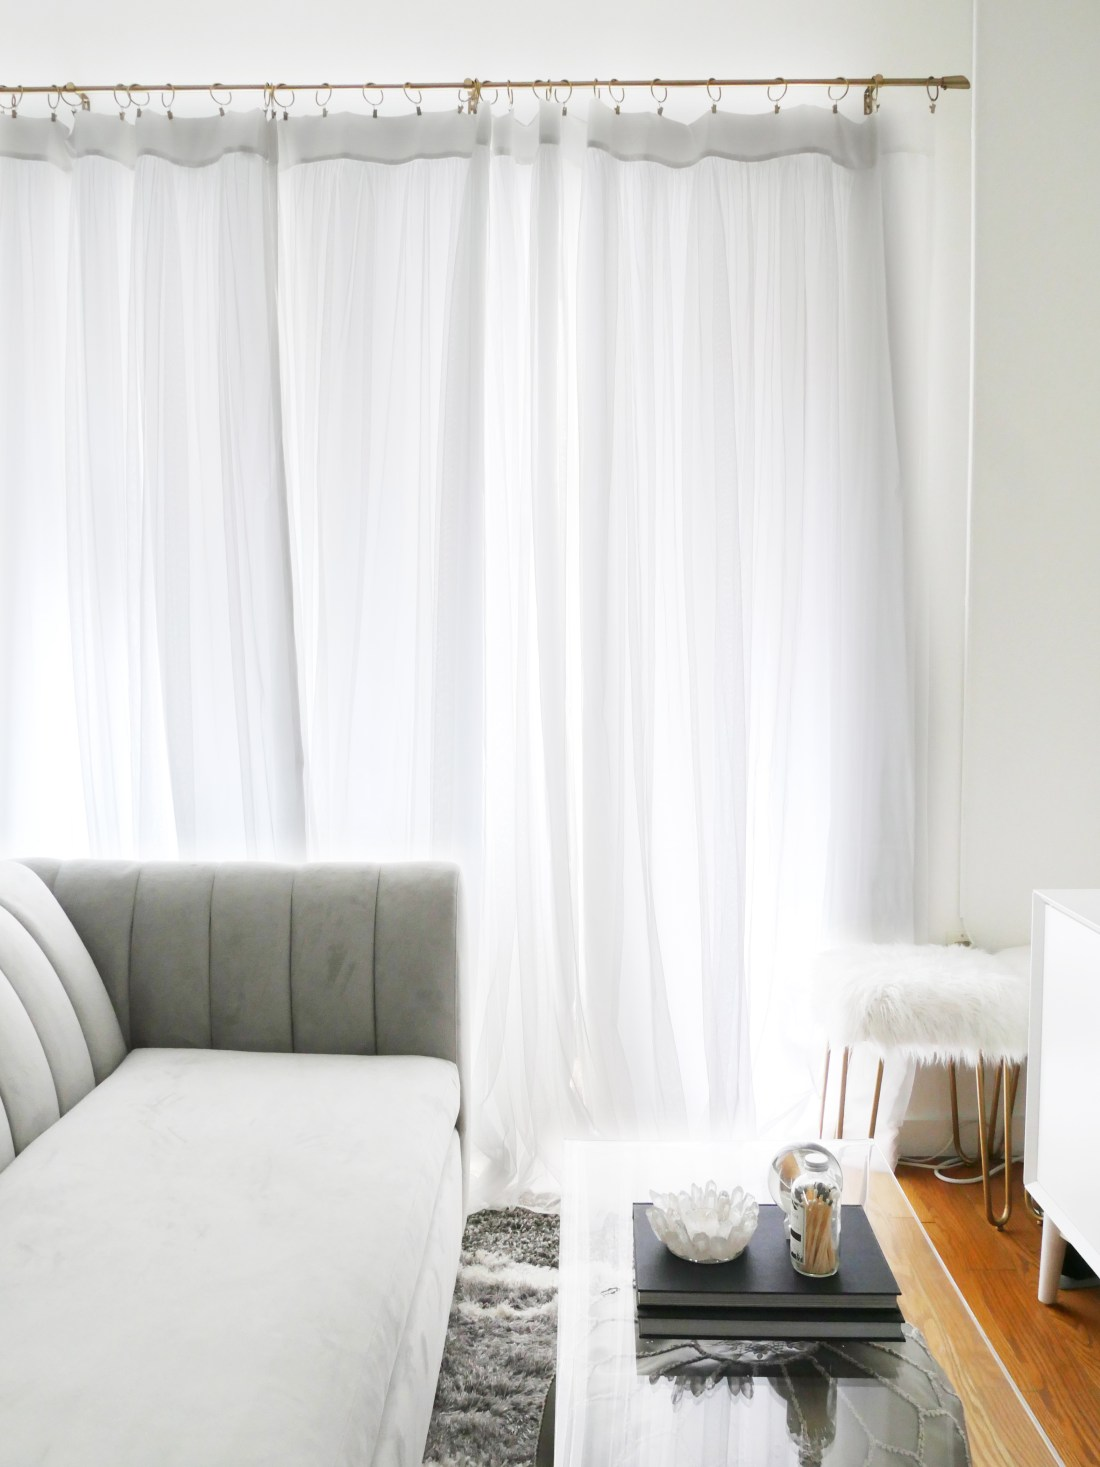 Live in a small apartment and don't know how to decorate it? Or on a tight budget and feel like you don't have the money to spend on new furniture? Struggling to find studio apartment ideas? Well, you can finally erase those fears! Learn how to decorate turn a small space into a chic home WHILE staying on a budget! #studioapartmentideas #tinystudioapartmentideas #studioapartmentdecorating #decoratingonabudget #smallapartmentideas